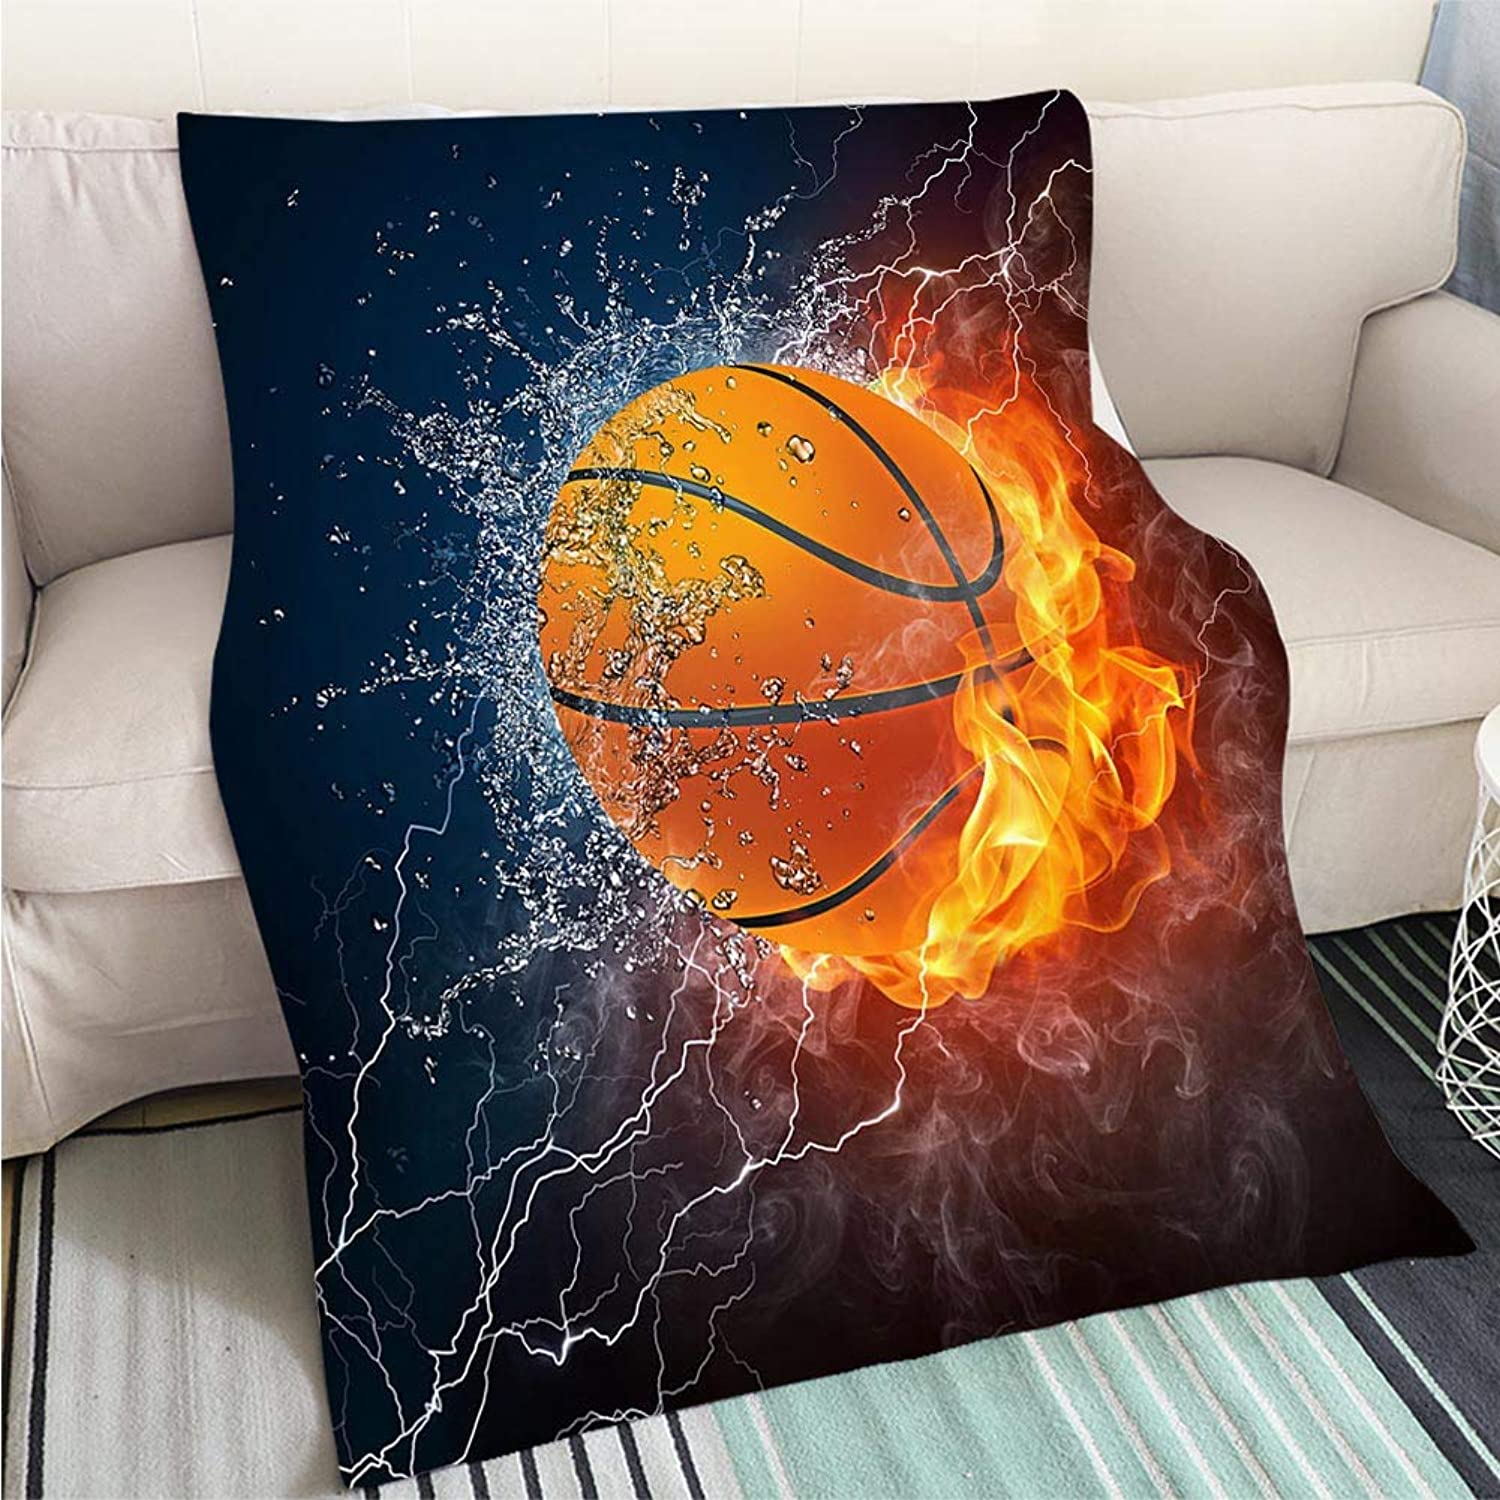 BEICICI Breathable Flannel Warm Weighted Blanket Illustration of a Basketball Half in Water Half in fire Sofa Bed or Bed 3D Printing Cool Quilt